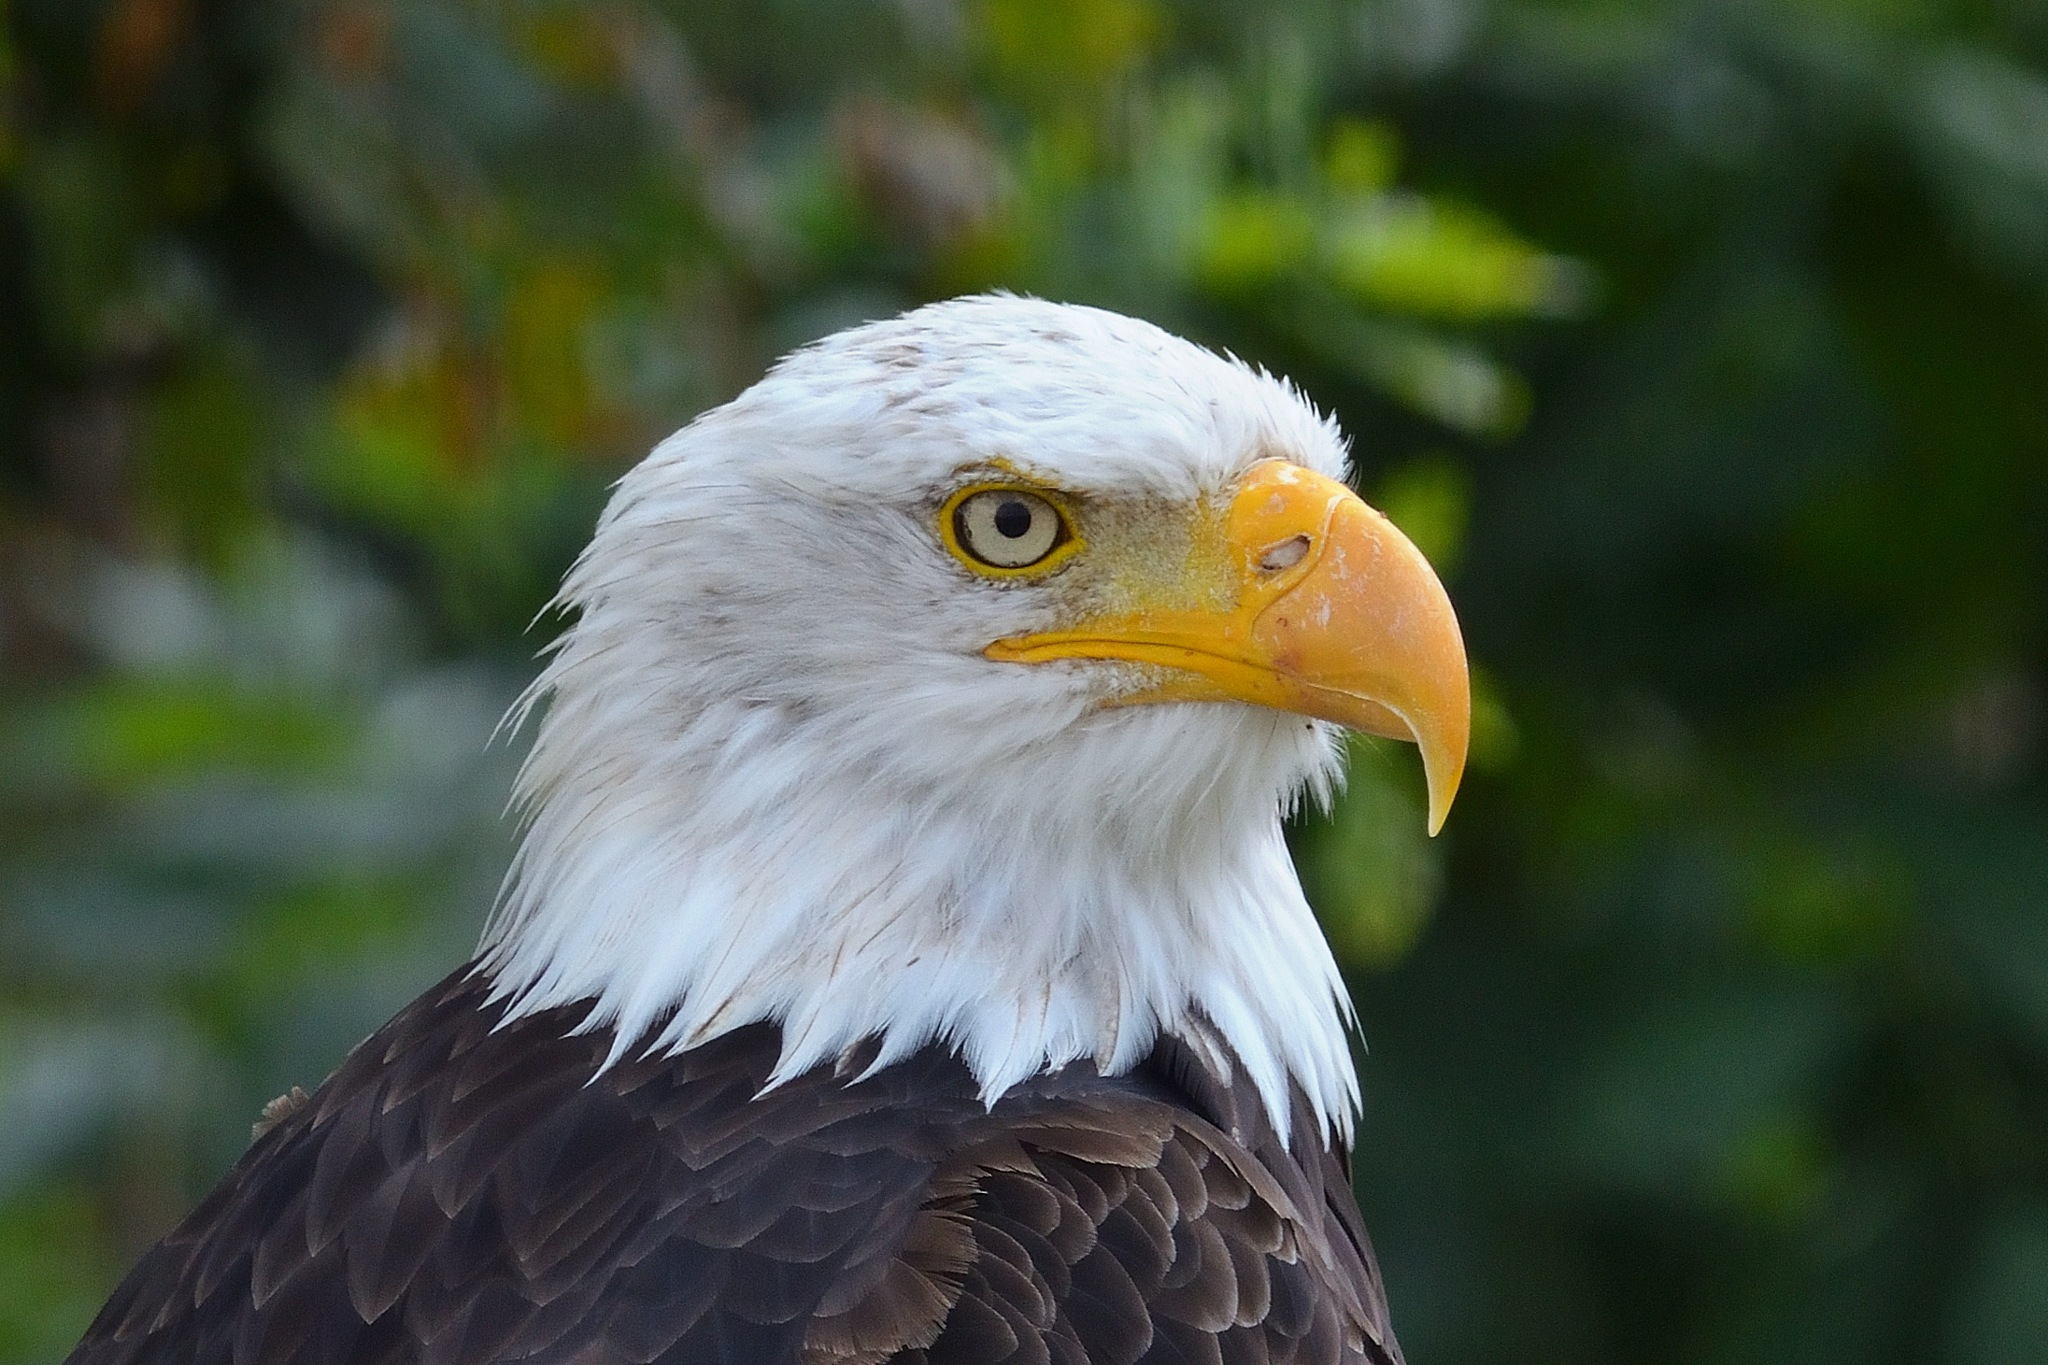 Bold Eagle by Henk Meima